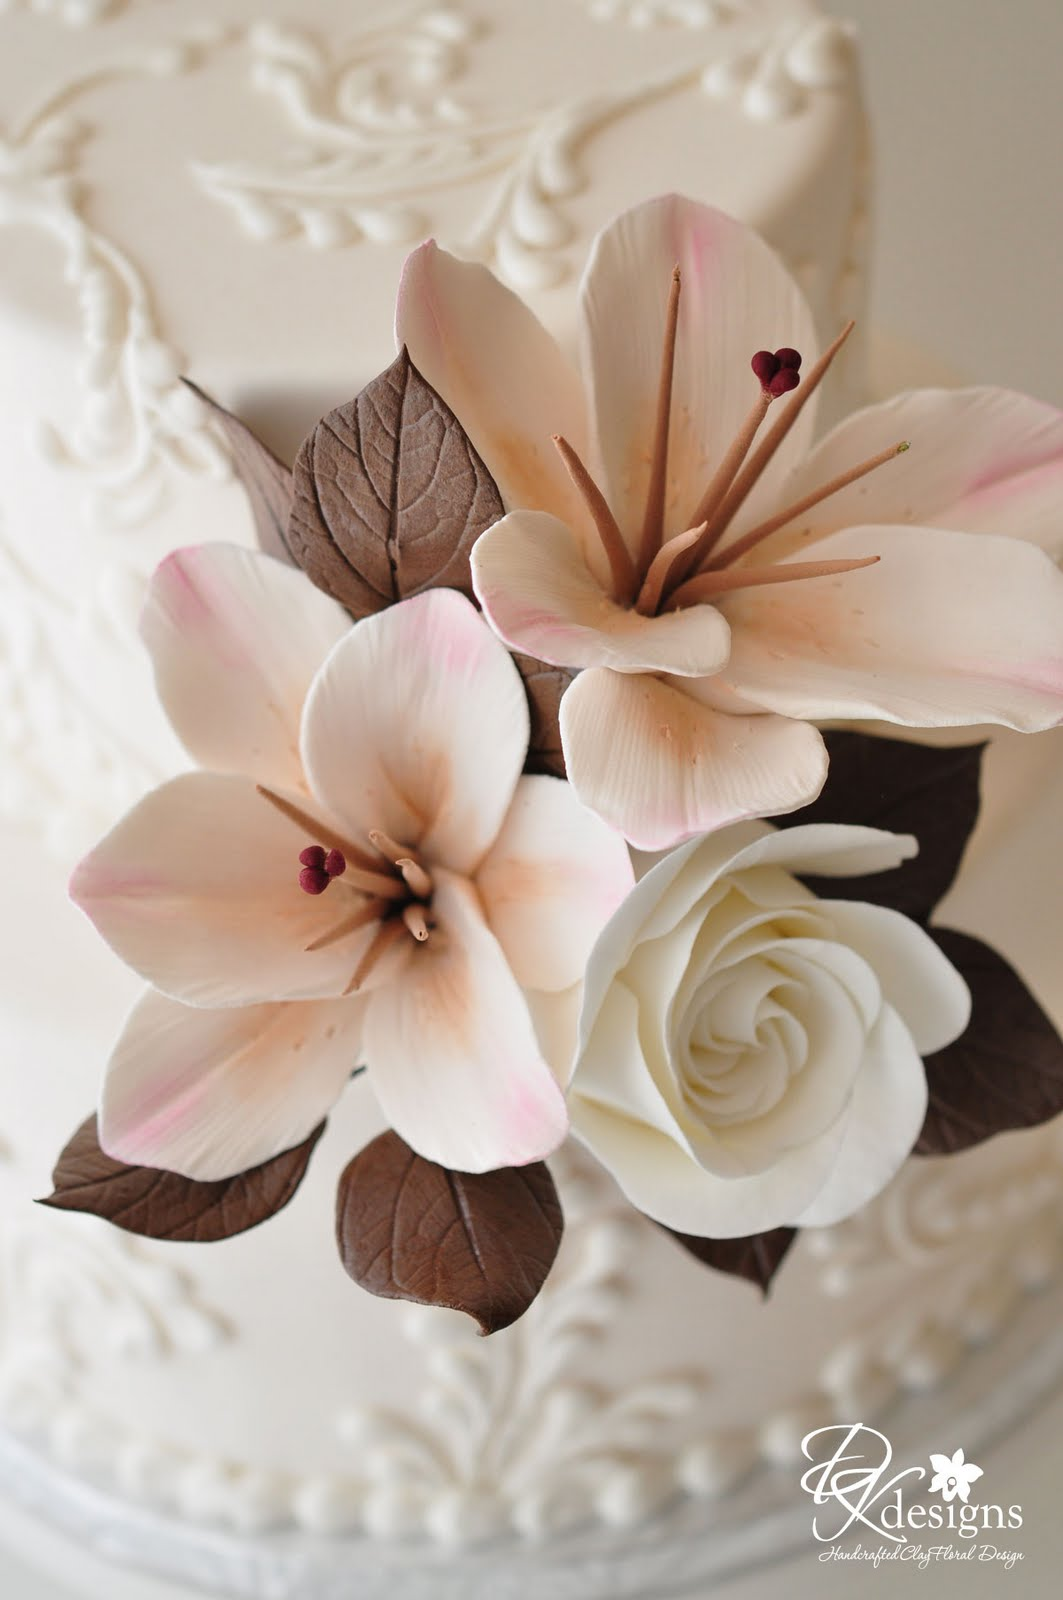 ivory, chocolate brown and pink cake flowers - dk designs